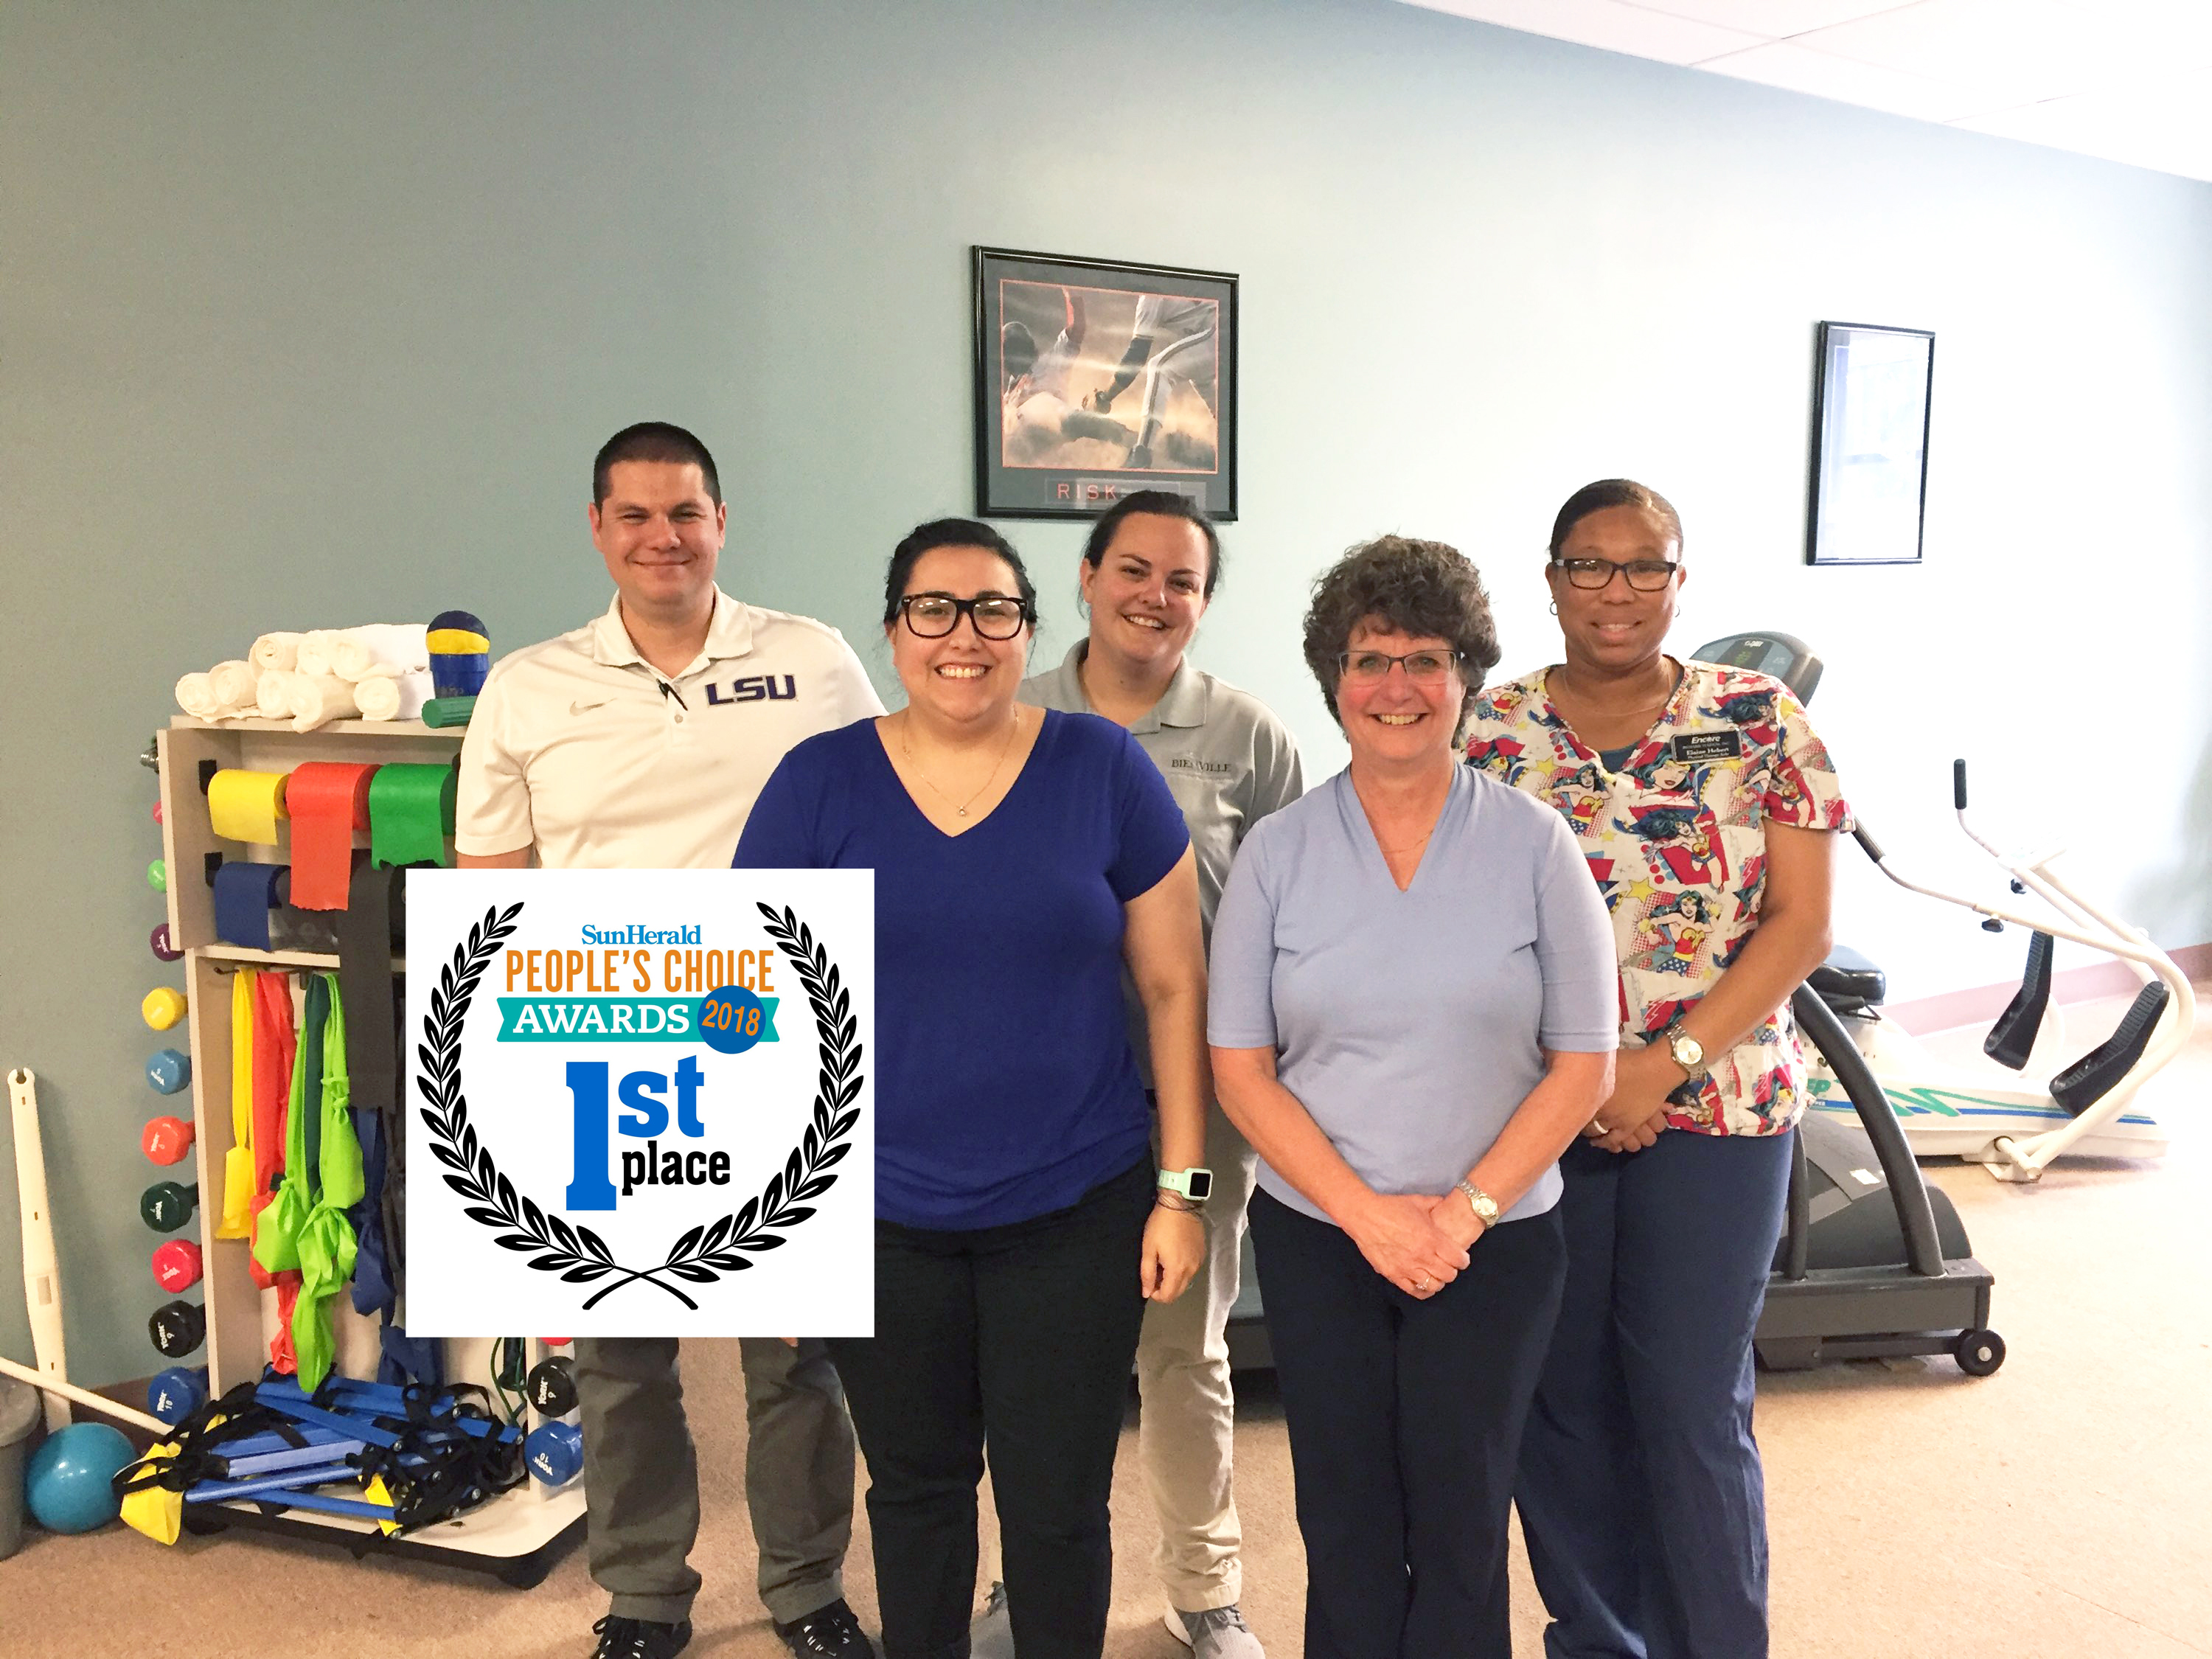 Encore Rehabilitation-Long Beach wins 1st Place Physical Therapy Clinic in the 2018 Sun Herald People's Choice Awards